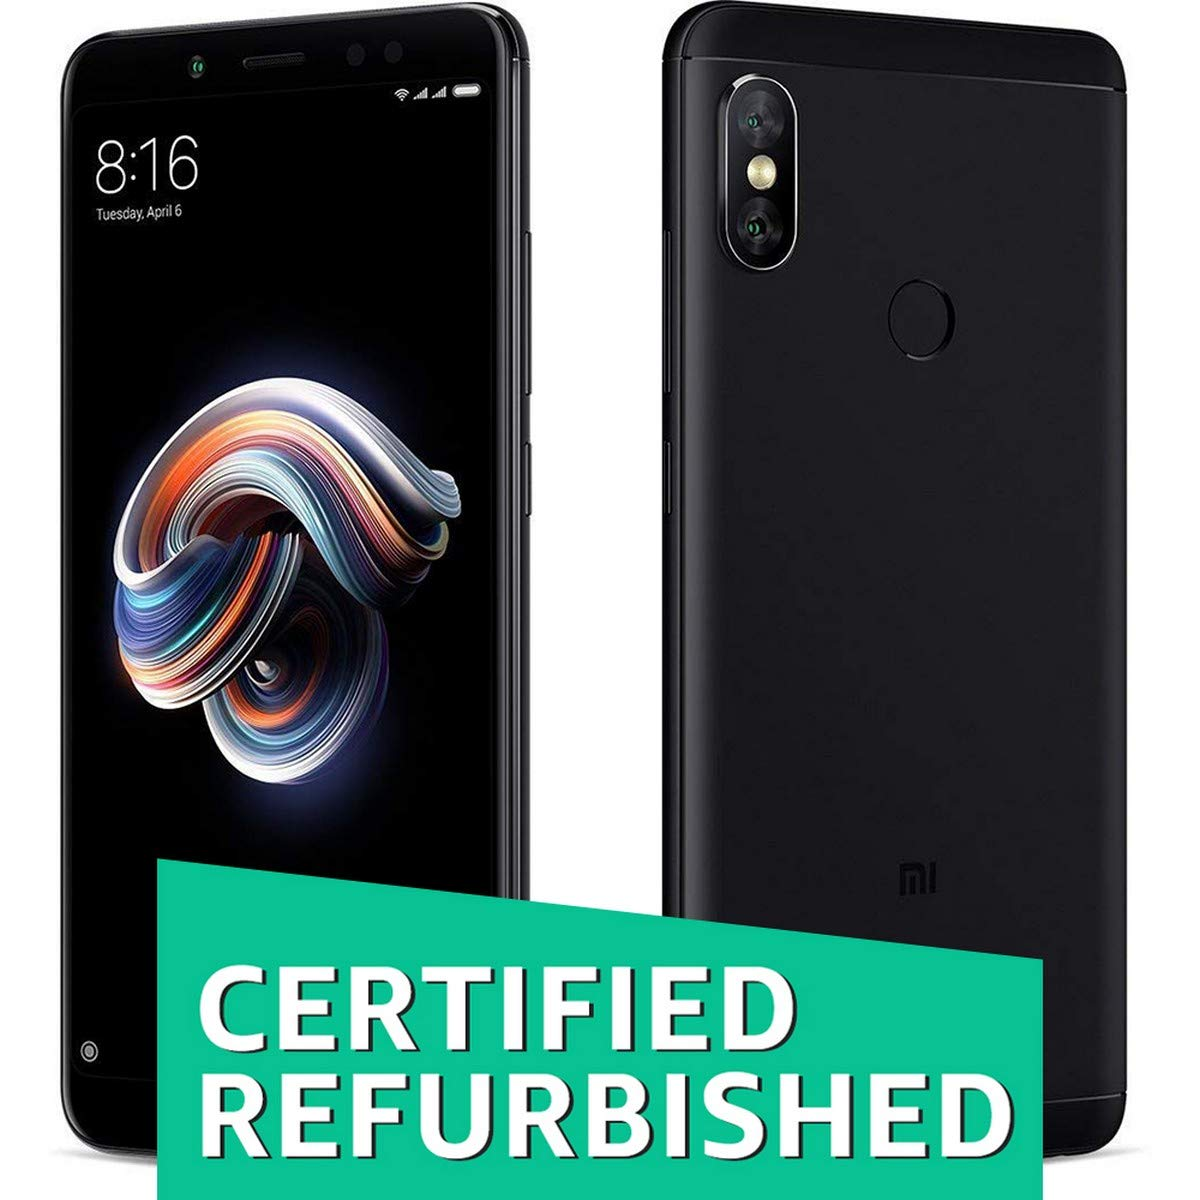 (Certified REFURBISHED) Redmi Note 5 Pro (Black)